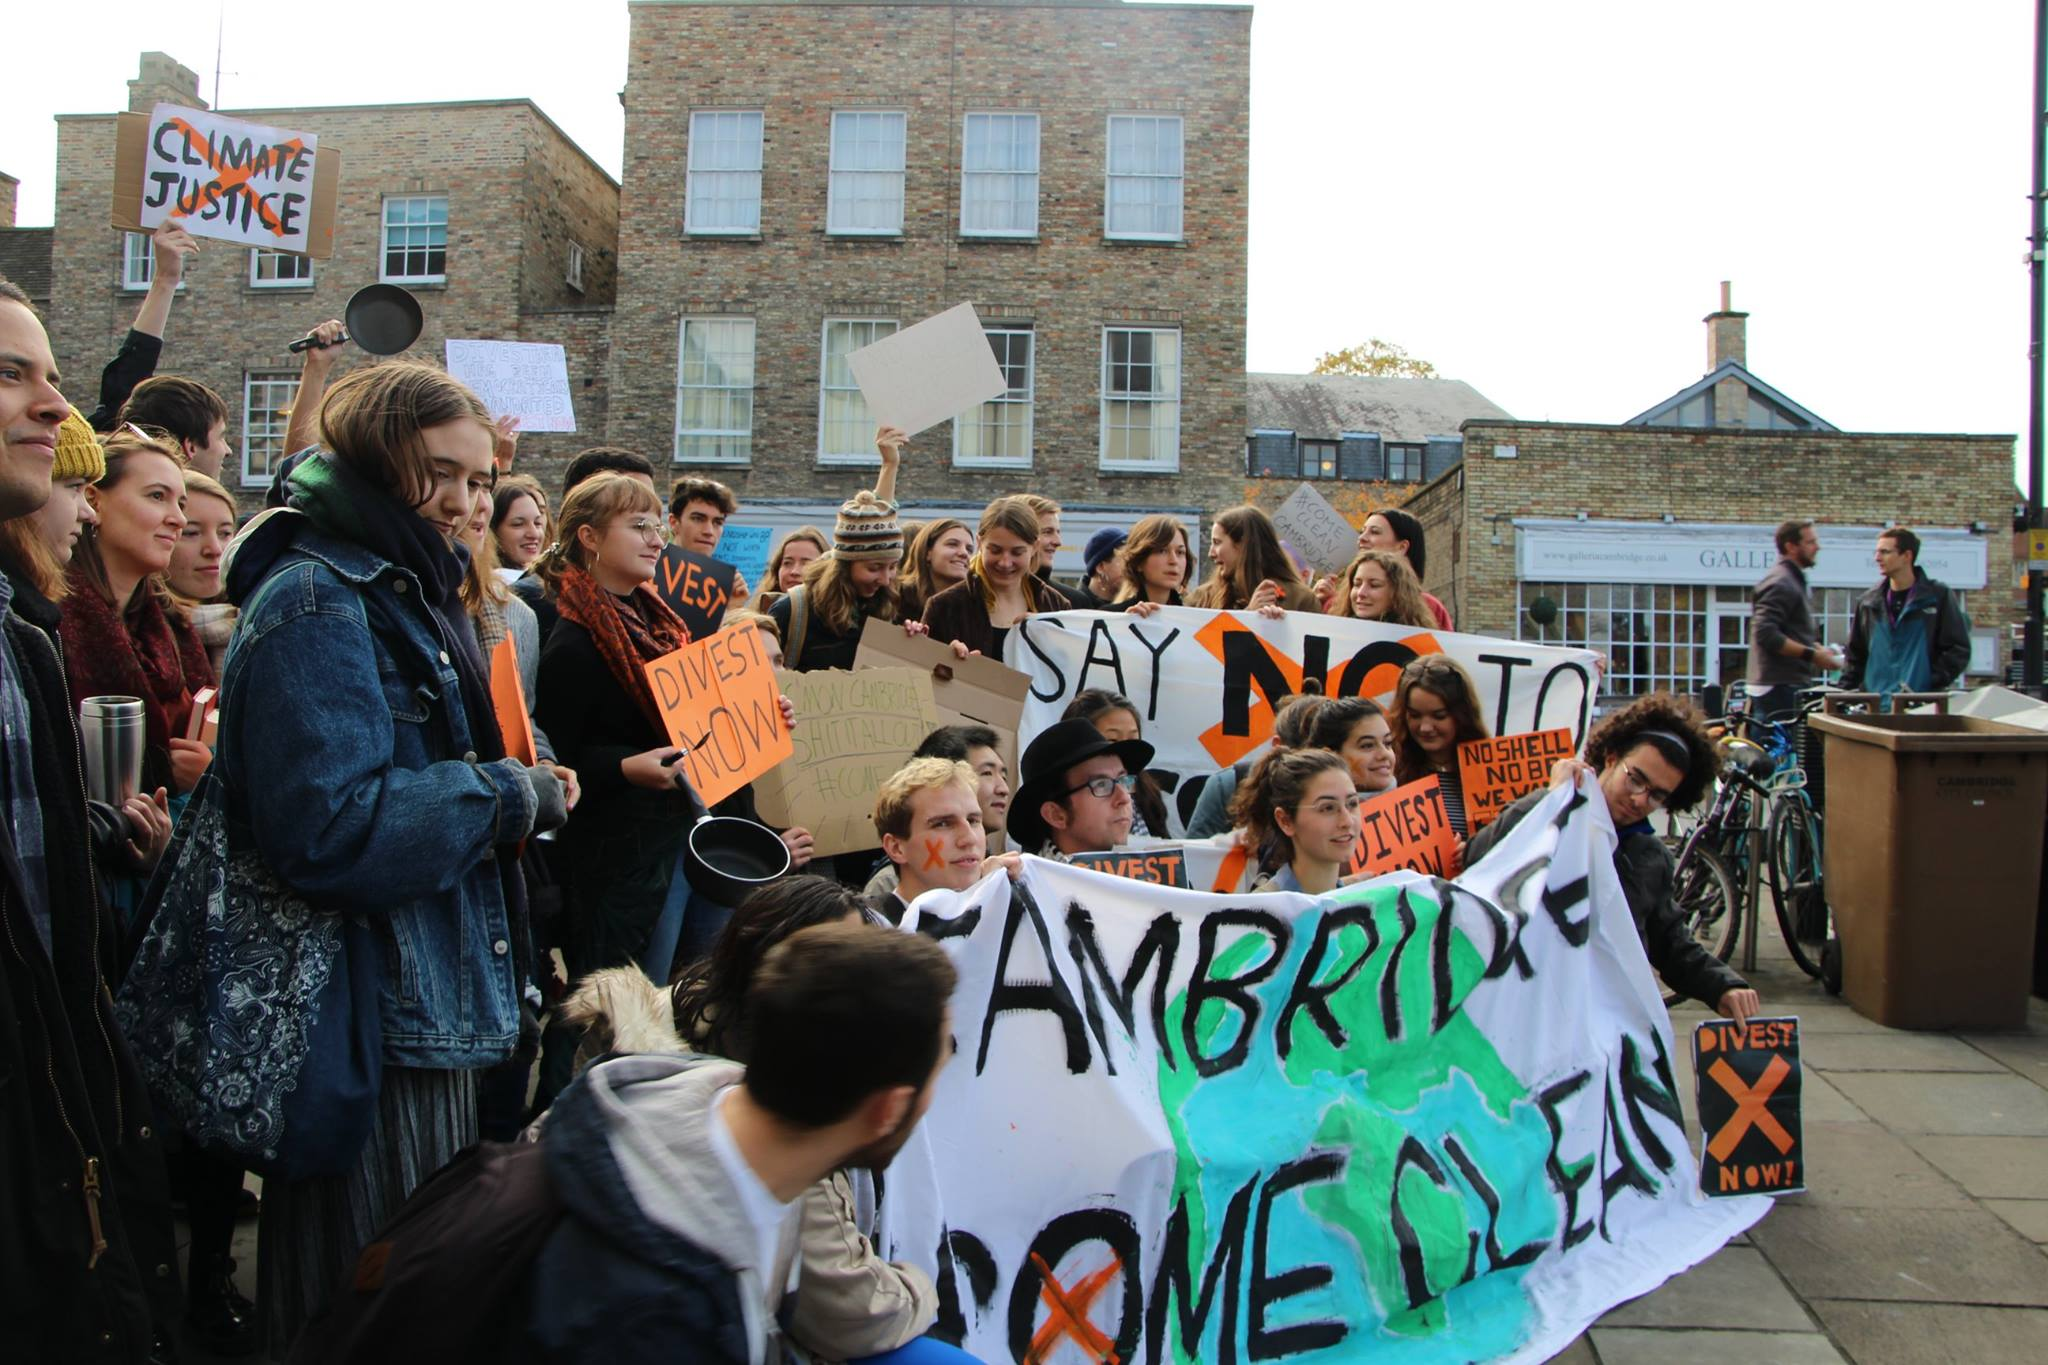 Divestment march in Cambridge, November 2017